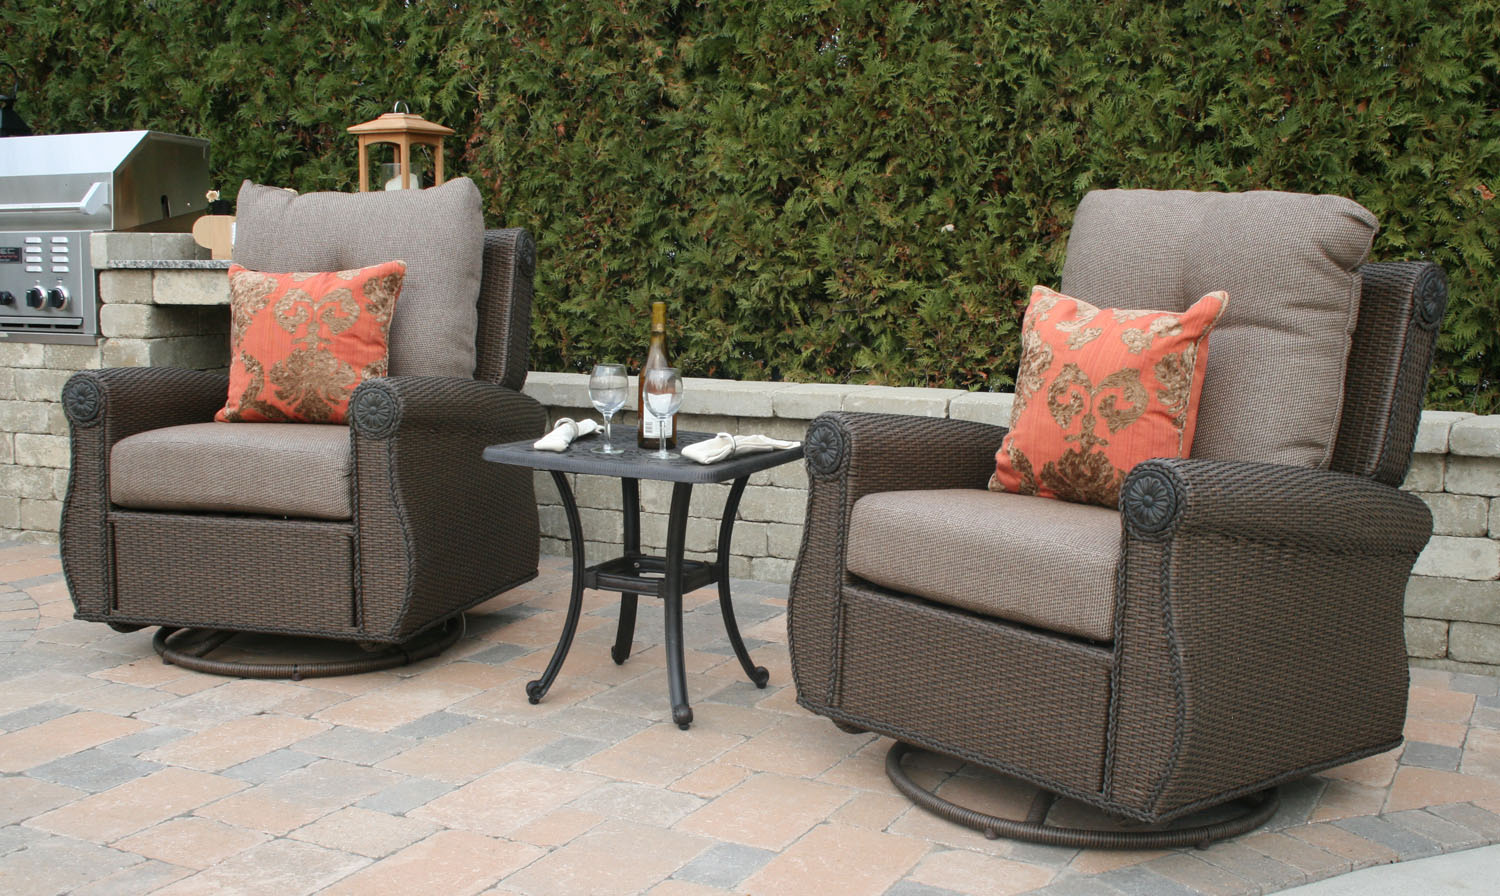 wicker patio furniture set plain patio giovanna luxury all weather